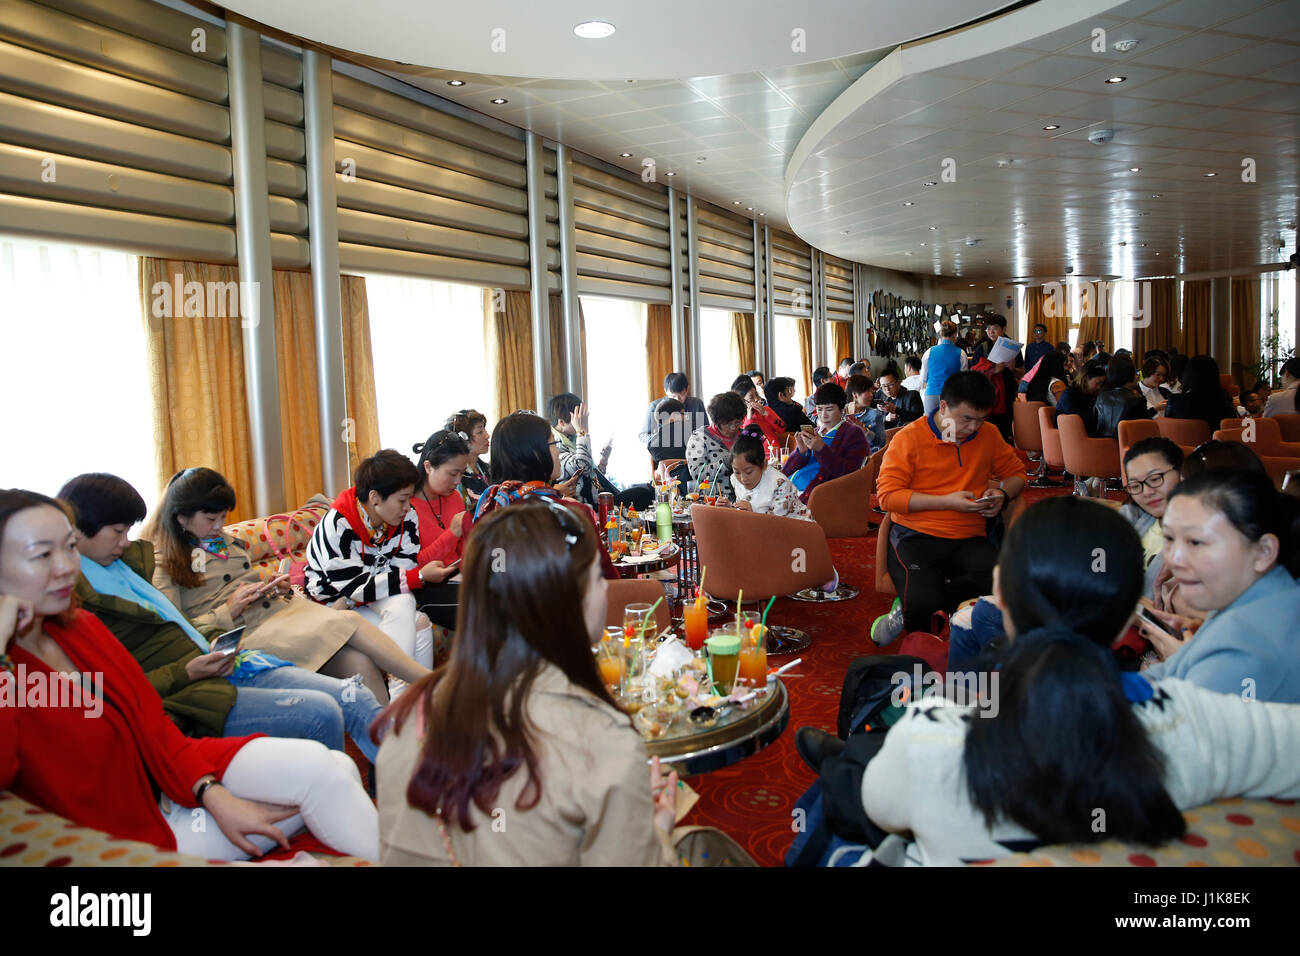 Athens, Greece's largest port. 21st Apr, 2017. Chinese Tourists rest at a Celestyal Cruises ship in Piraeus, Greece's Stock Photo